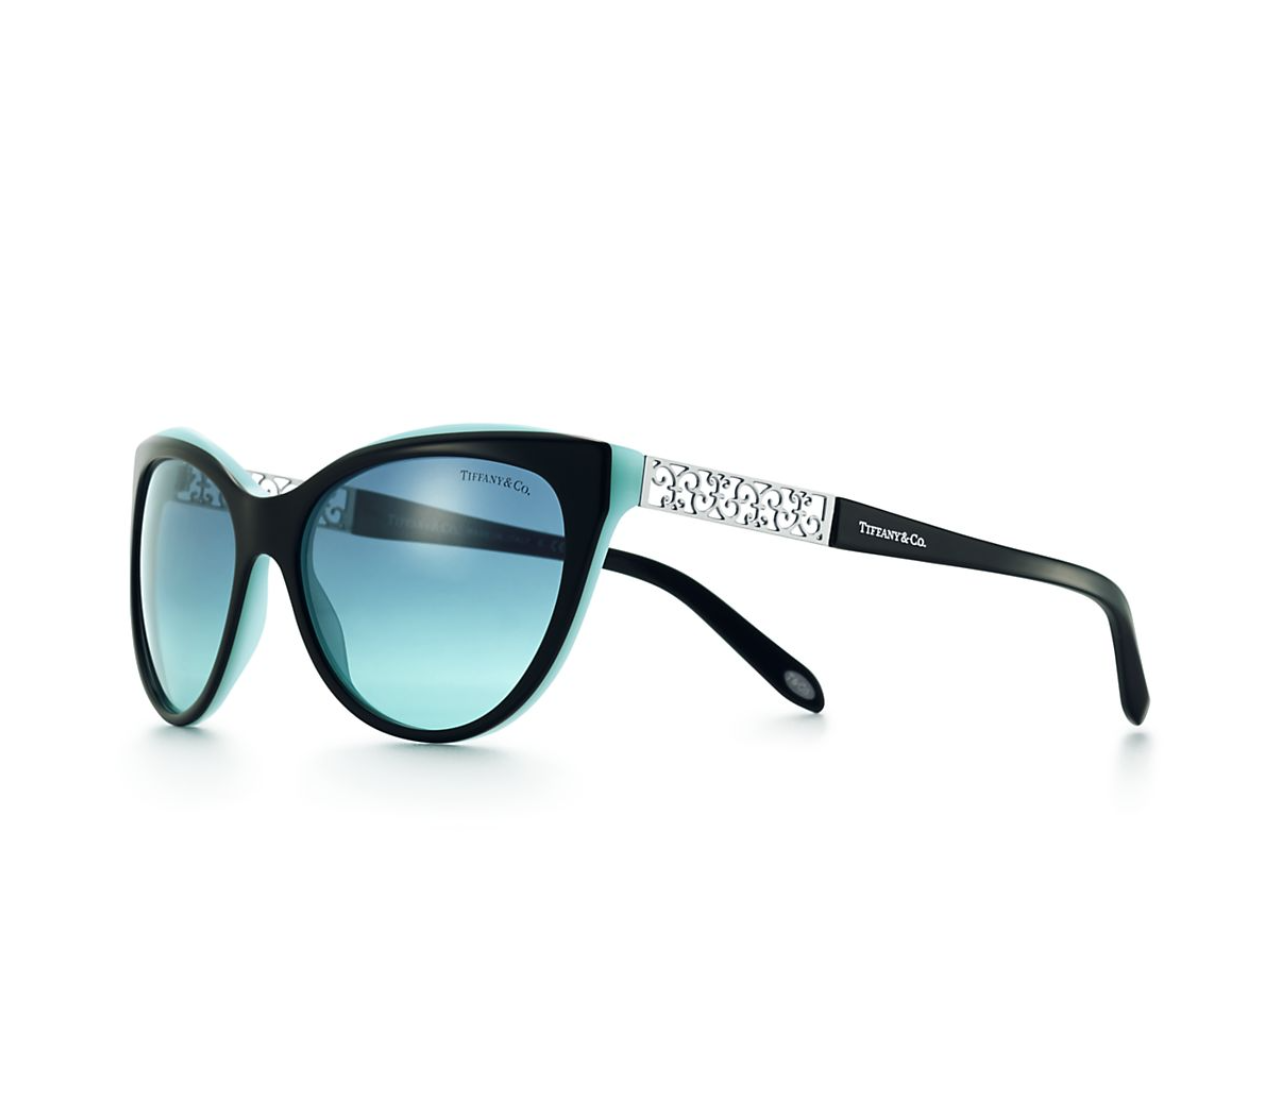 388b455754335 TIFFANY Cat Eye Sunglasses